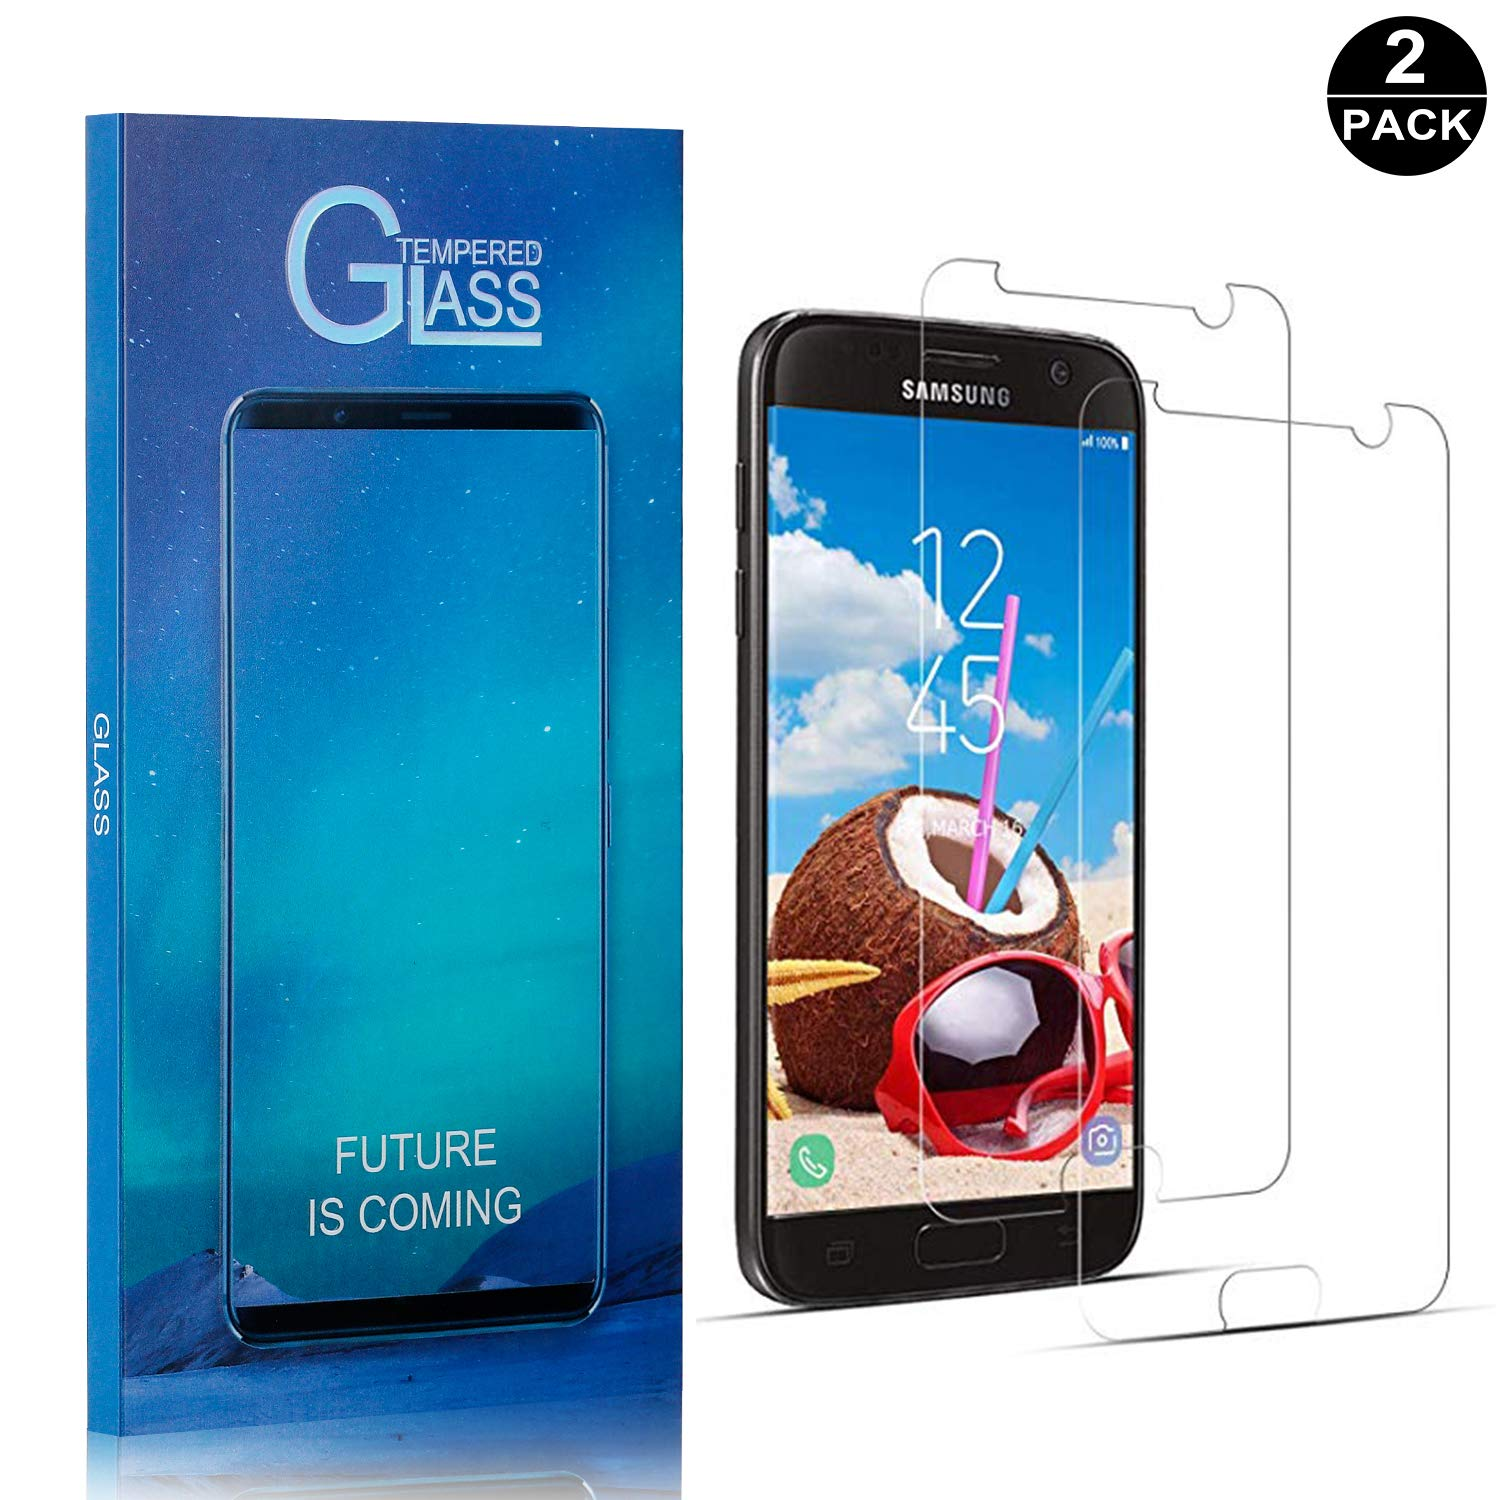 UNEXTATI Premium Scratch Resistant HD Clear Tempered Glass Film for Samsung Galaxy S10e Tempered Glass Screen Protector Compatible with Galaxy S10e 3 Pack